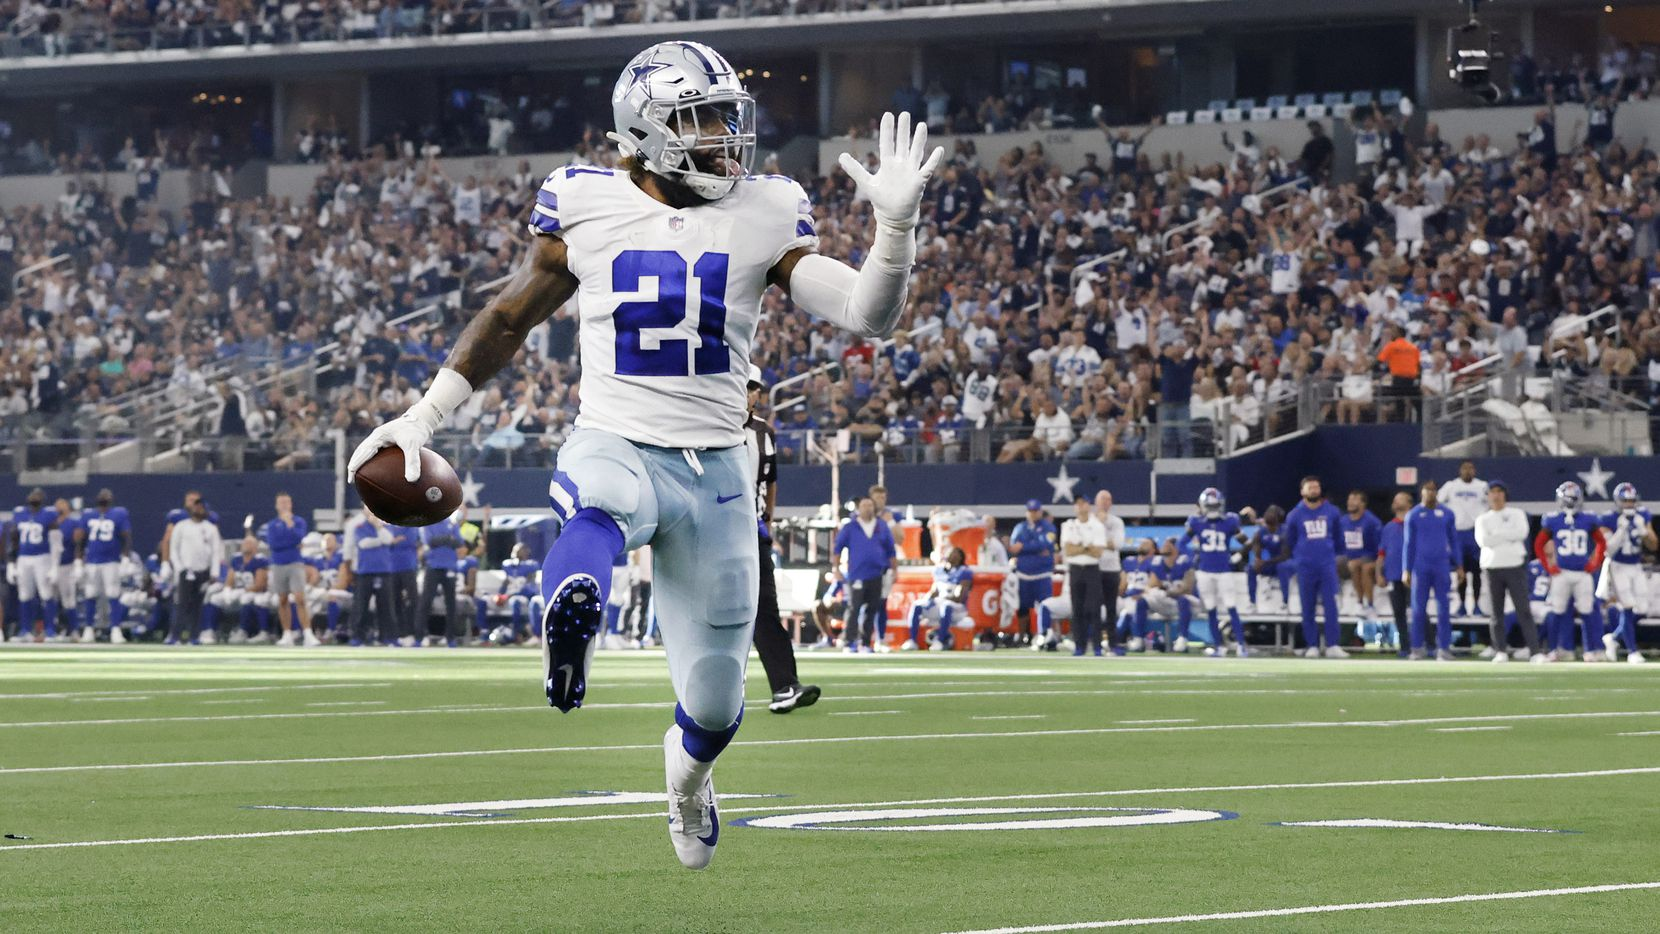 With his tongue hanging out, Dallas Cowboys running back Ezekiel Elliott (21) high steps towards the end zone for a third quarter touchdown against the New York Giants at AT&T Stadium in Arlington, Texas, Sunday, October 10, 2021. (Tom Fox/The Dallas Morning News)